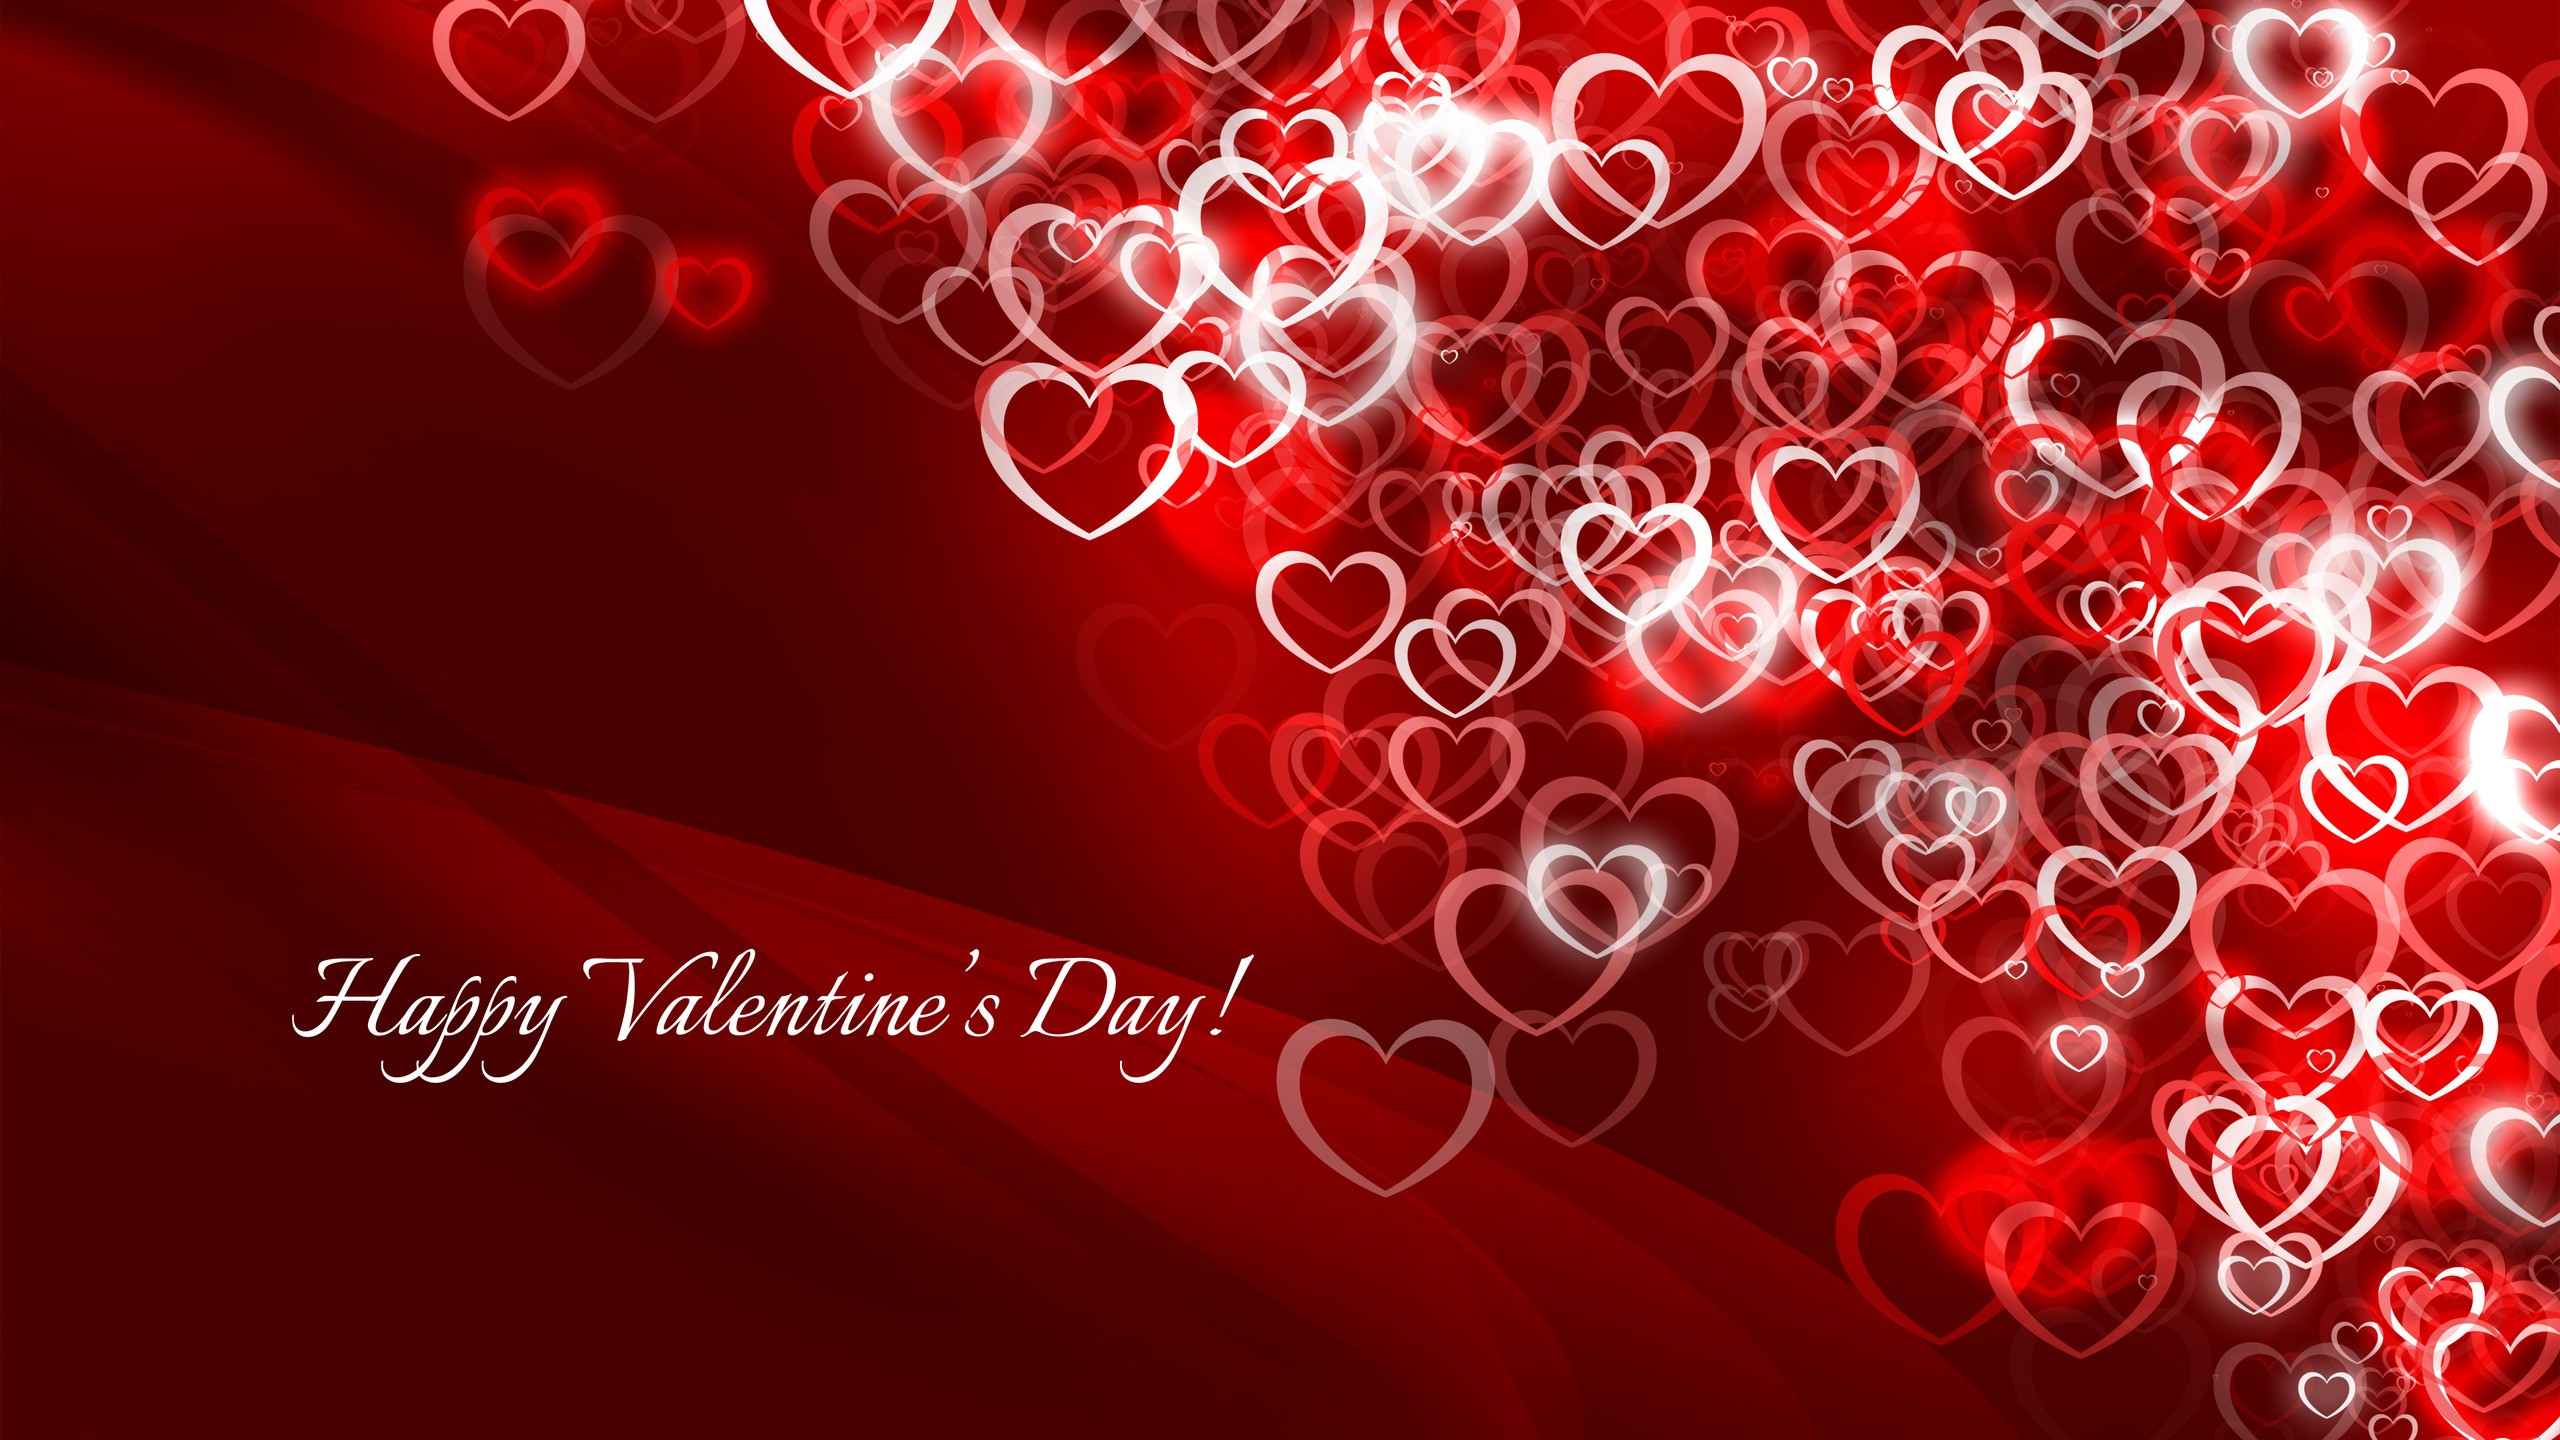 Happy Valentines Day HD Wallpaper Dekstop Amazing Tablet Desktop 2560x1440